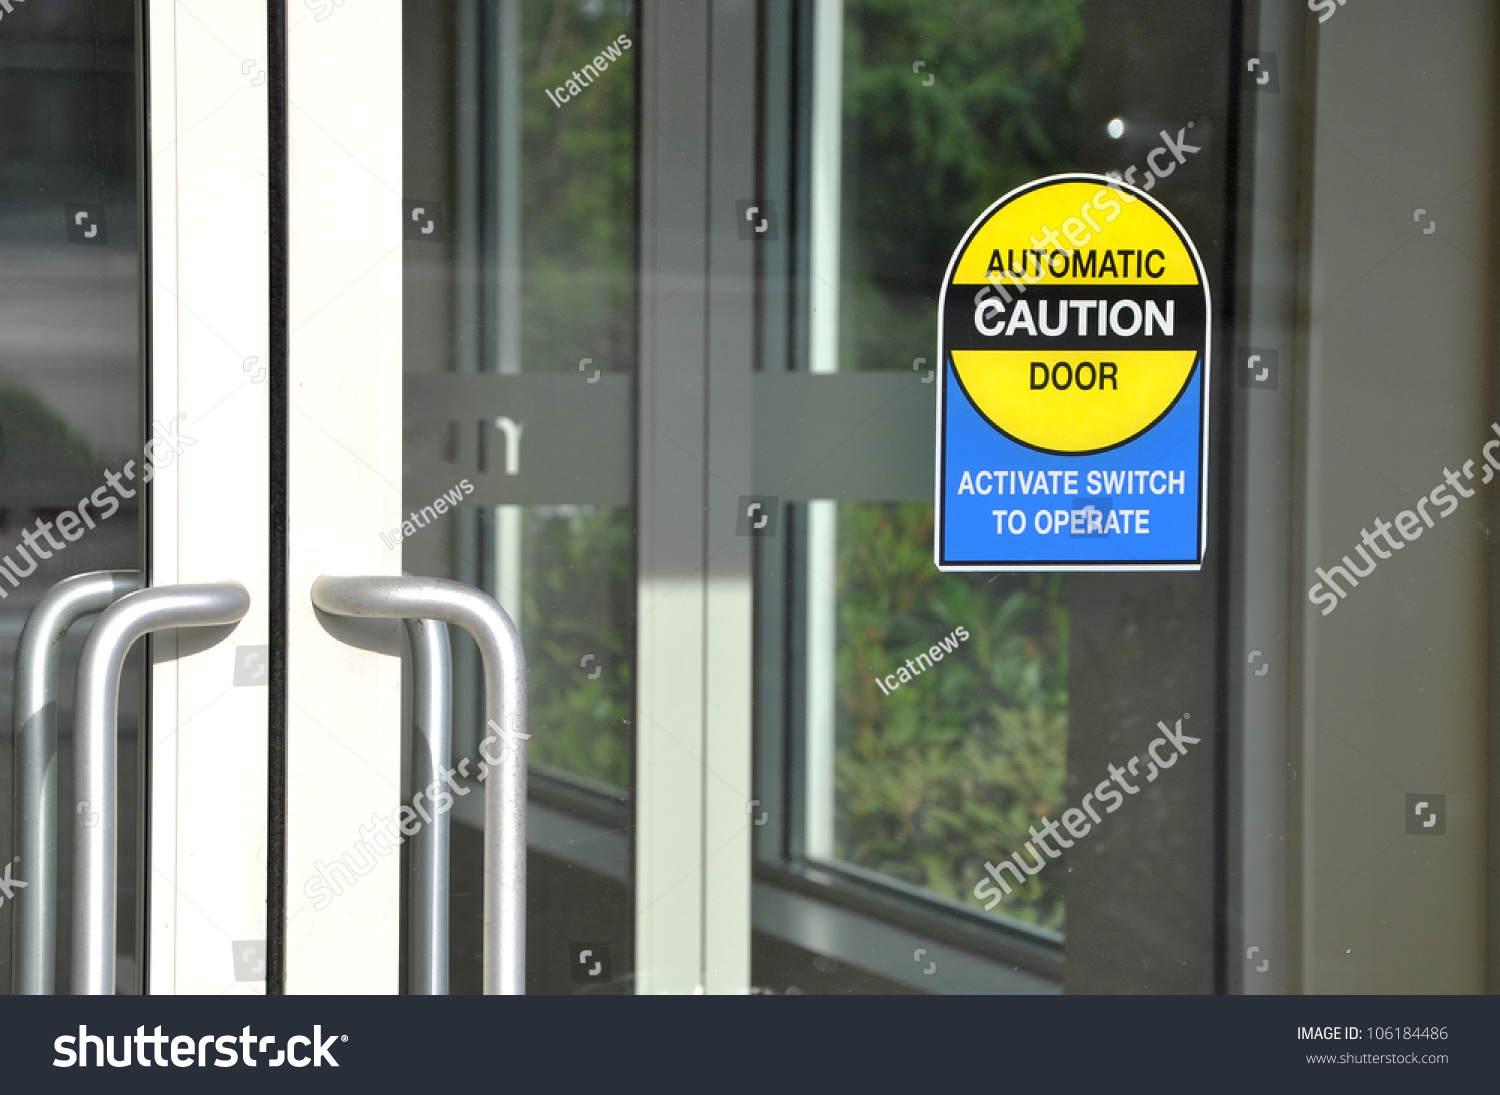 Automatic caution door sign stock photo